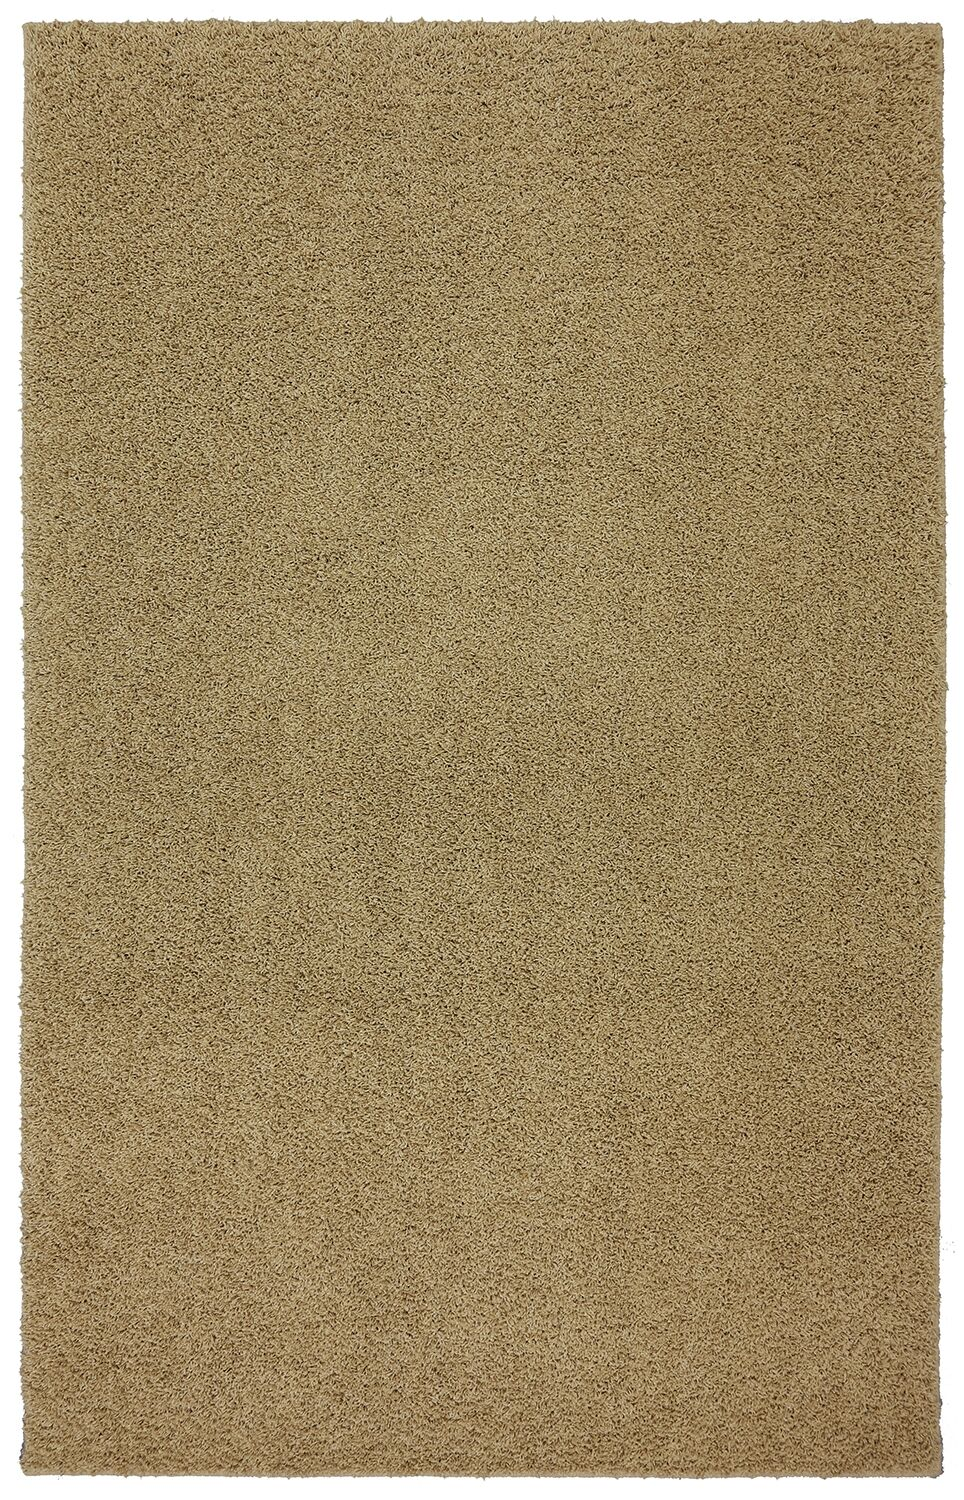 Larmon Bolster Shag Kings Gold Tufted Area Rug Rug Size: Rectangle 5' x 8'